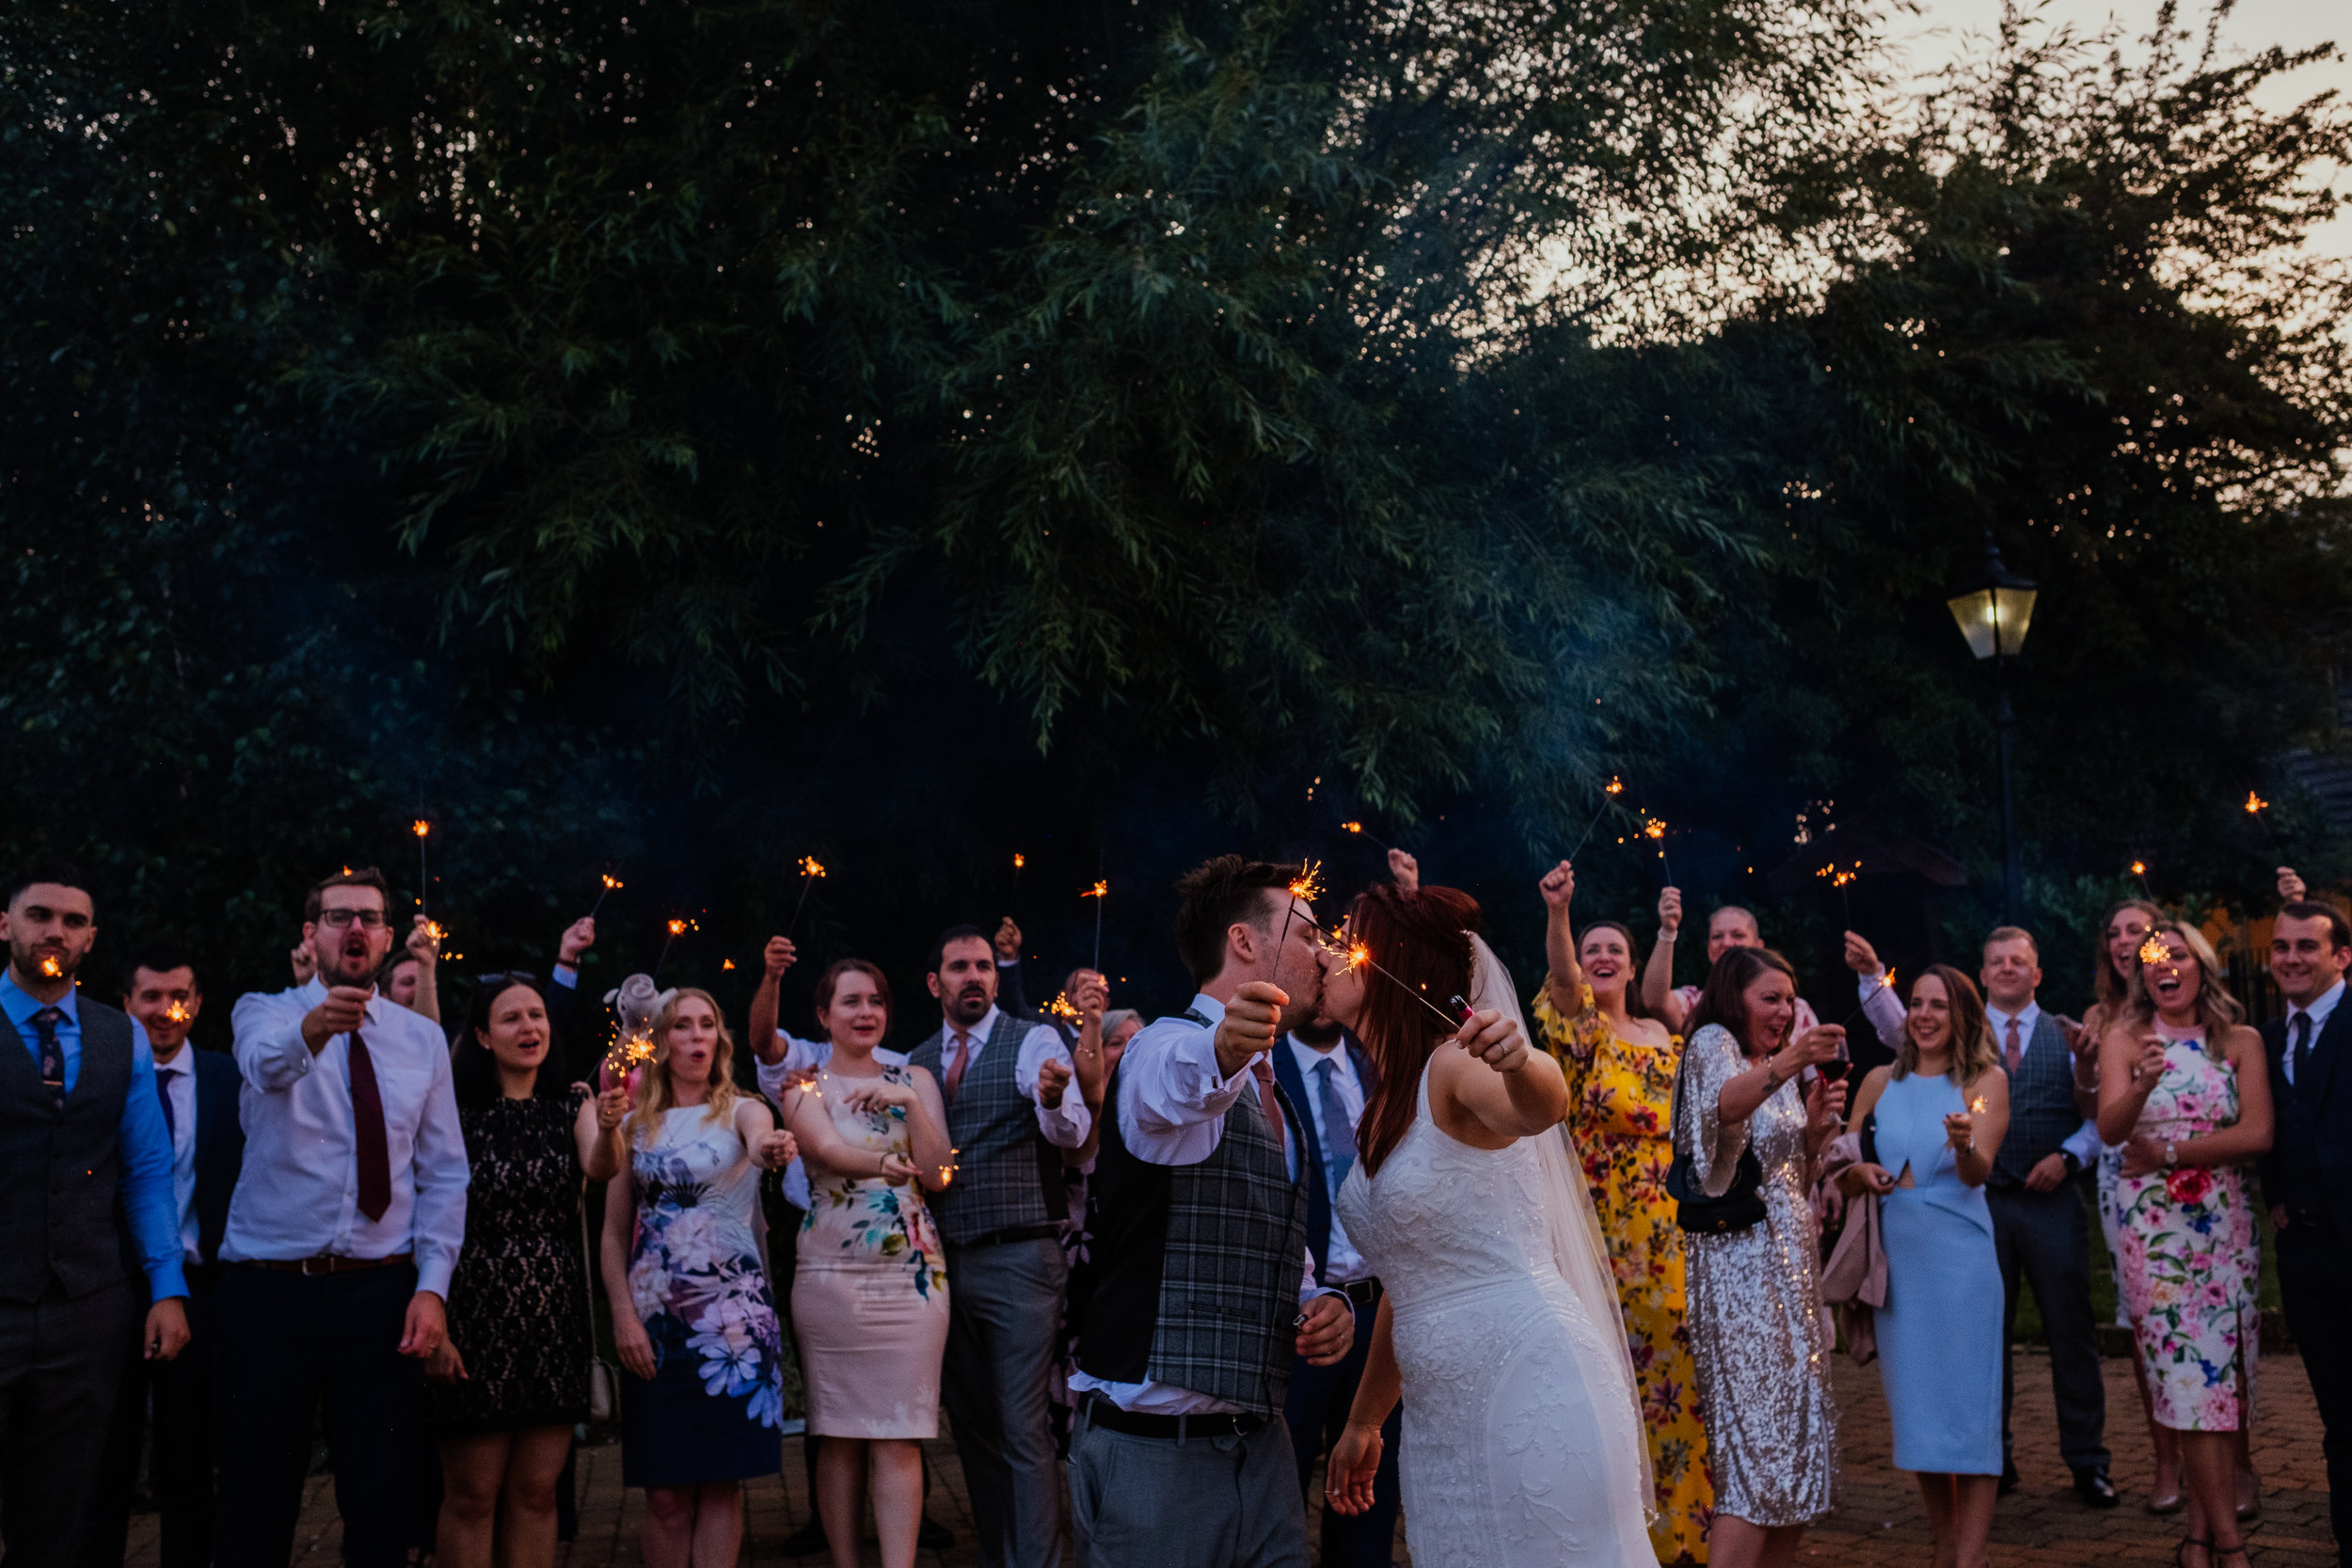 Bride and groom kiss during sparklers at Tewin Bury Farm wedding